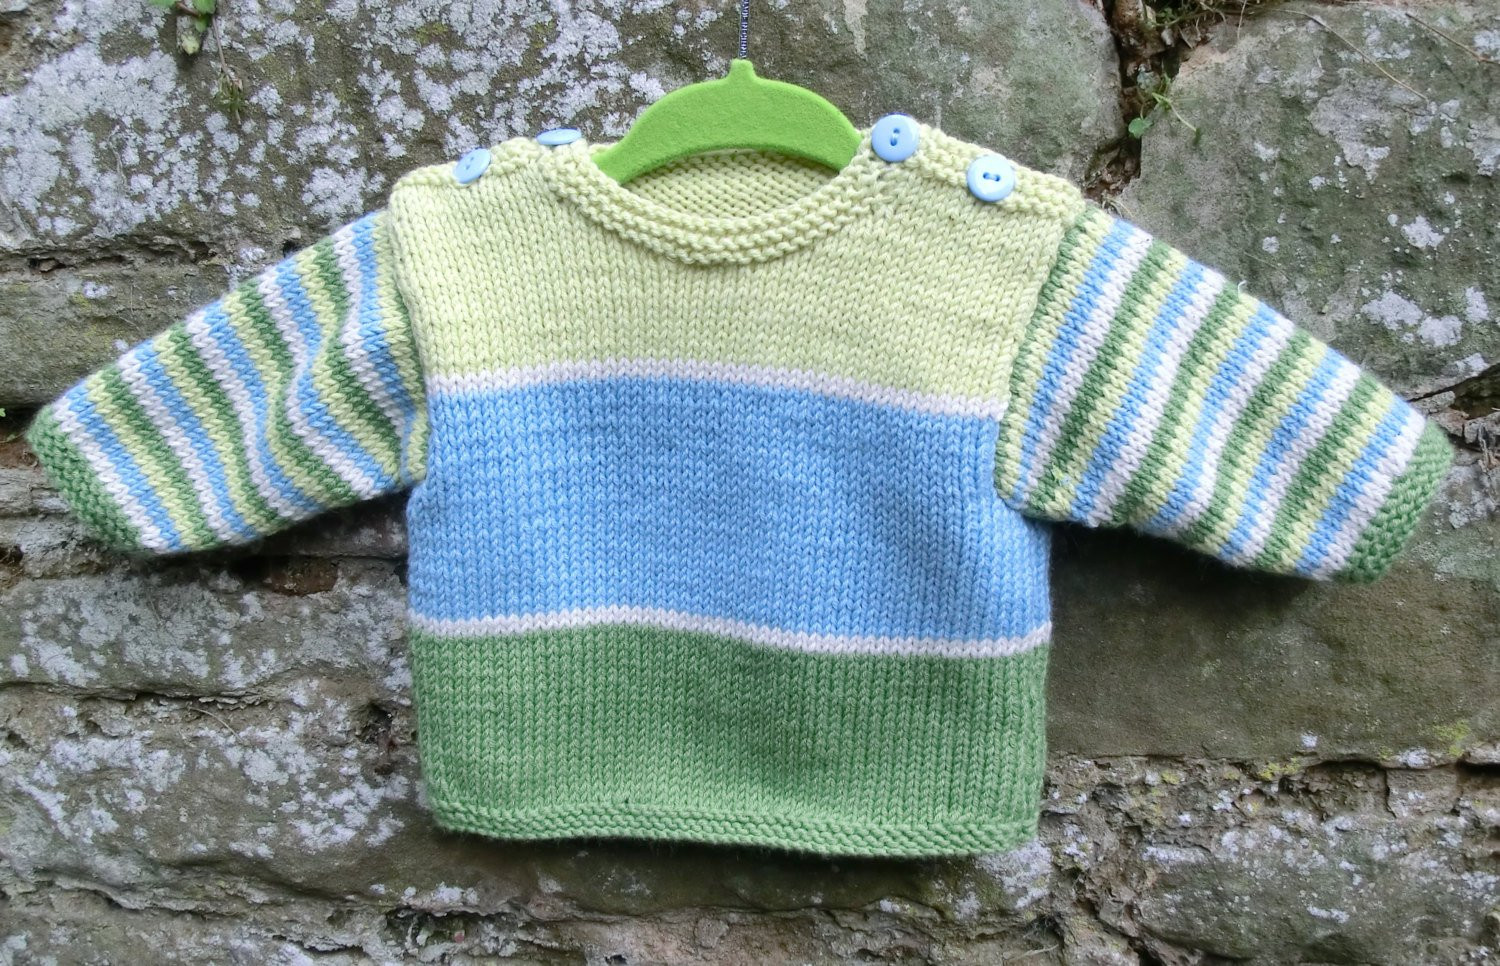 Unique Stripy Baby Sweater Knitting Pattern Pdf Easy Baby Sweater Knitting Pattern Of Lovely Baby Knitting Patterns Free Knitting Pattern for Easy Easy Baby Sweater Knitting Pattern